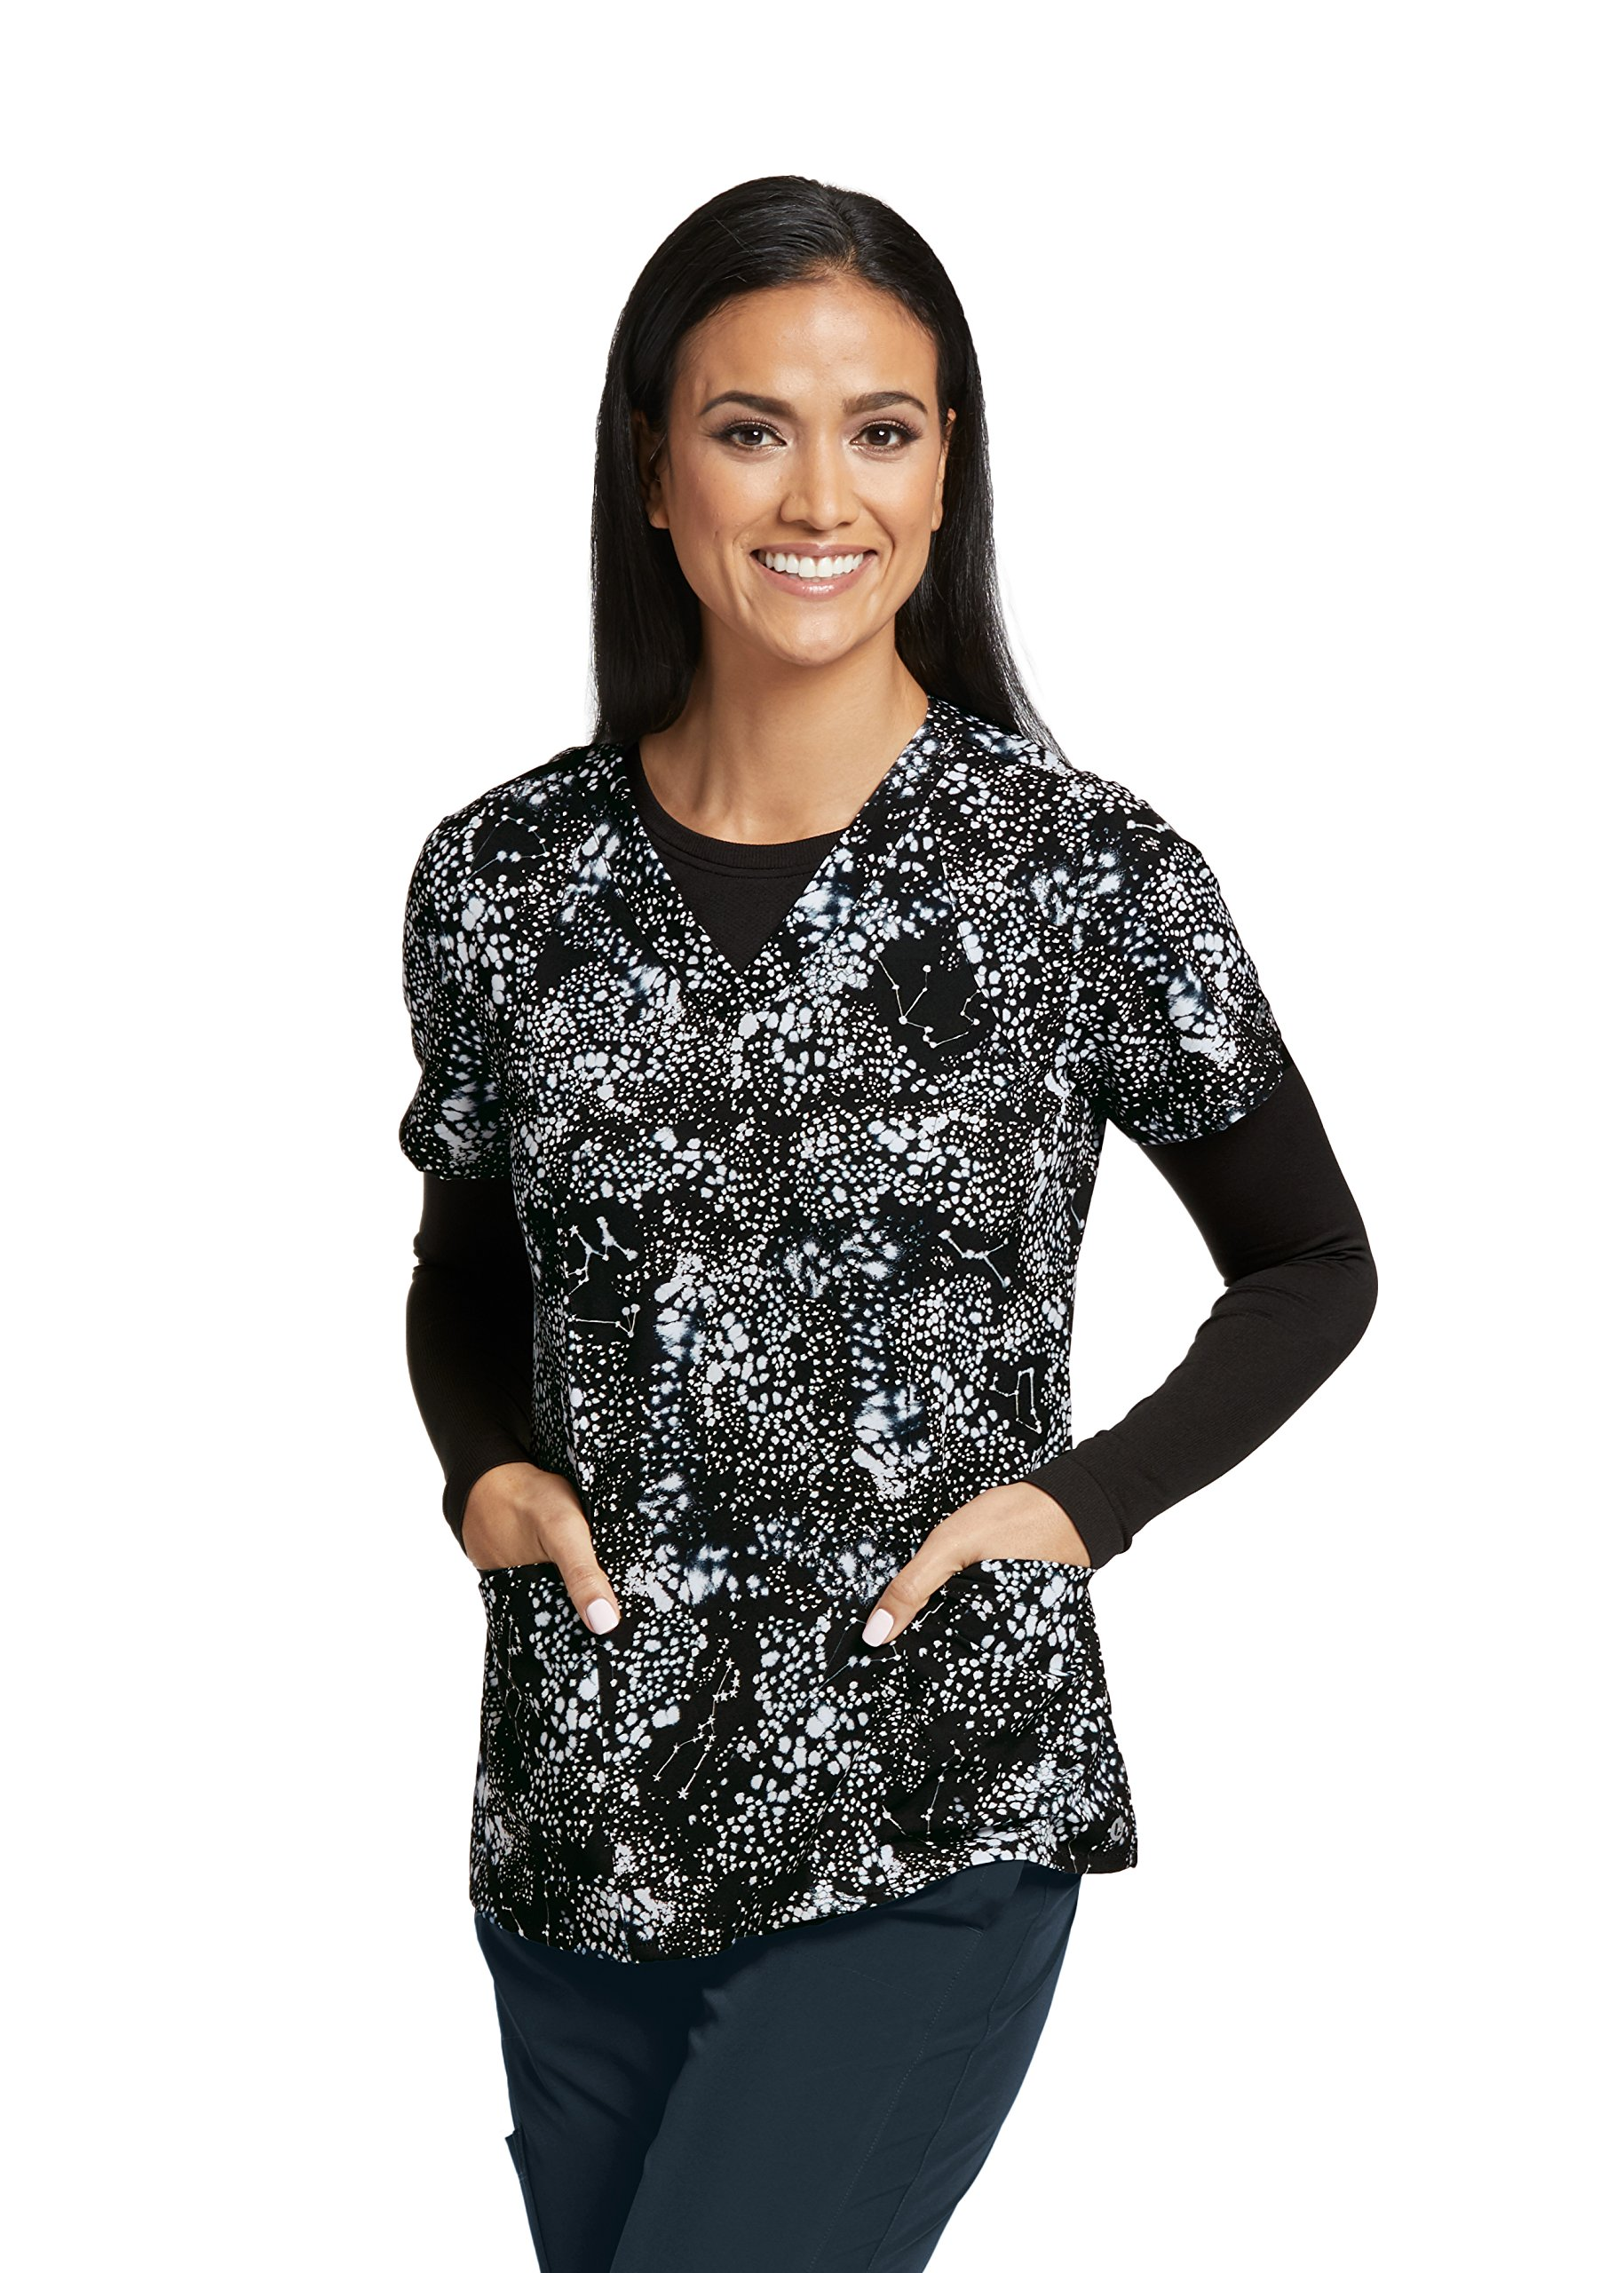 Barco One 5107 Women's Print V-Neck Top Constellation XL